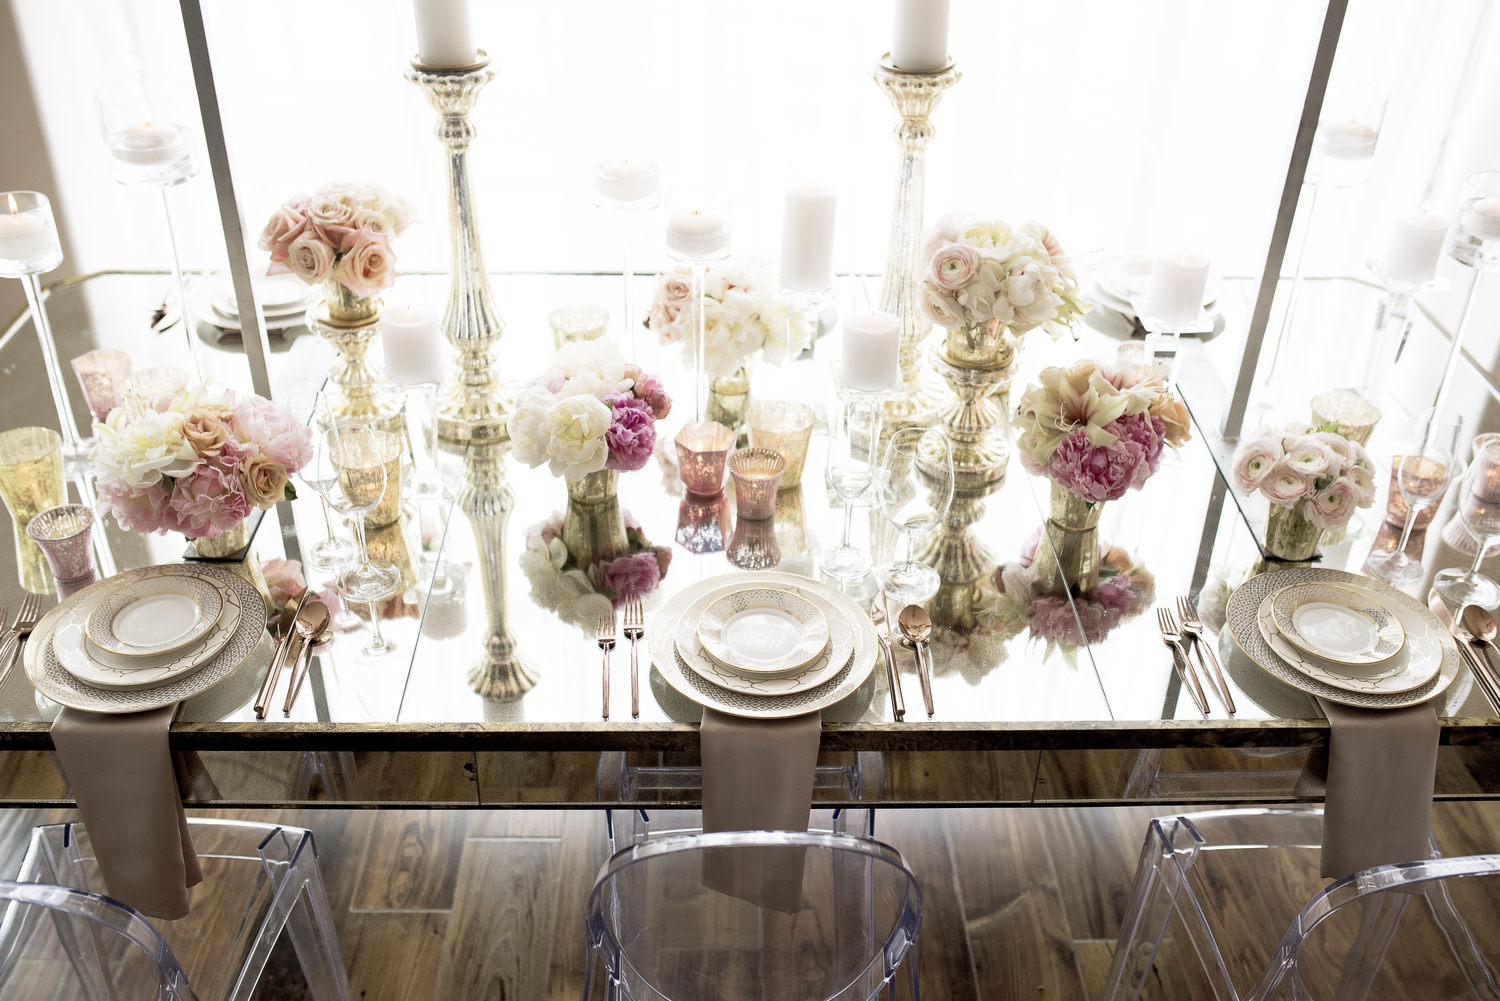 THE SCENE  Styling and Design by: FUSE Weddings & Events  Photography by: Elisha Braithwaite  Rentals provided by: Decoration Inc.  China,Glassware, and Flatware by: Diamond Rental   Linens by: Creative Coverings   Flowers by: Decoration Inc.  Venue: The Tasting Room